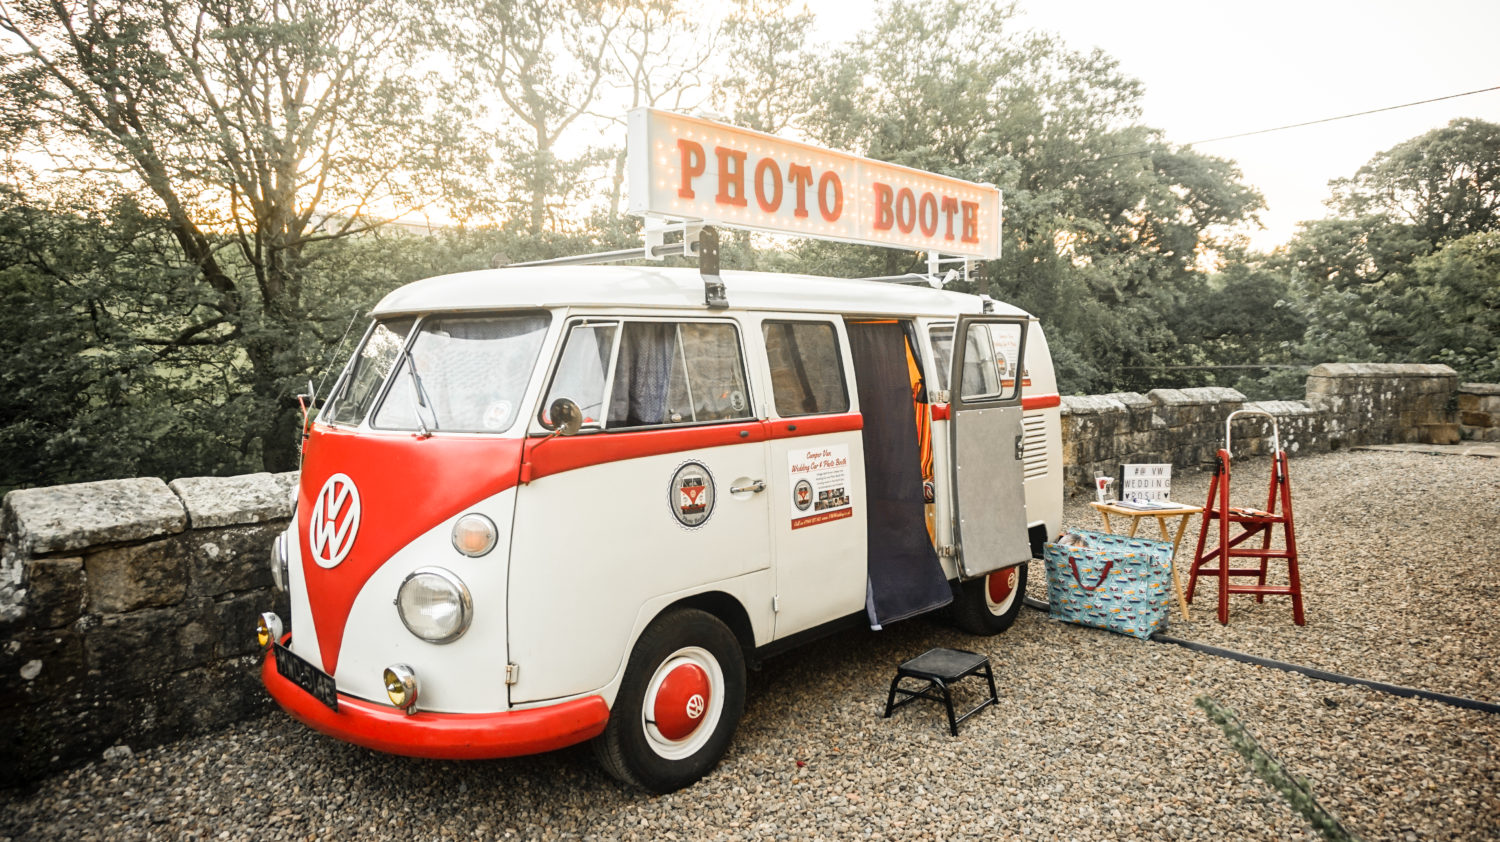 Caravan photo booth wedding sunset photo